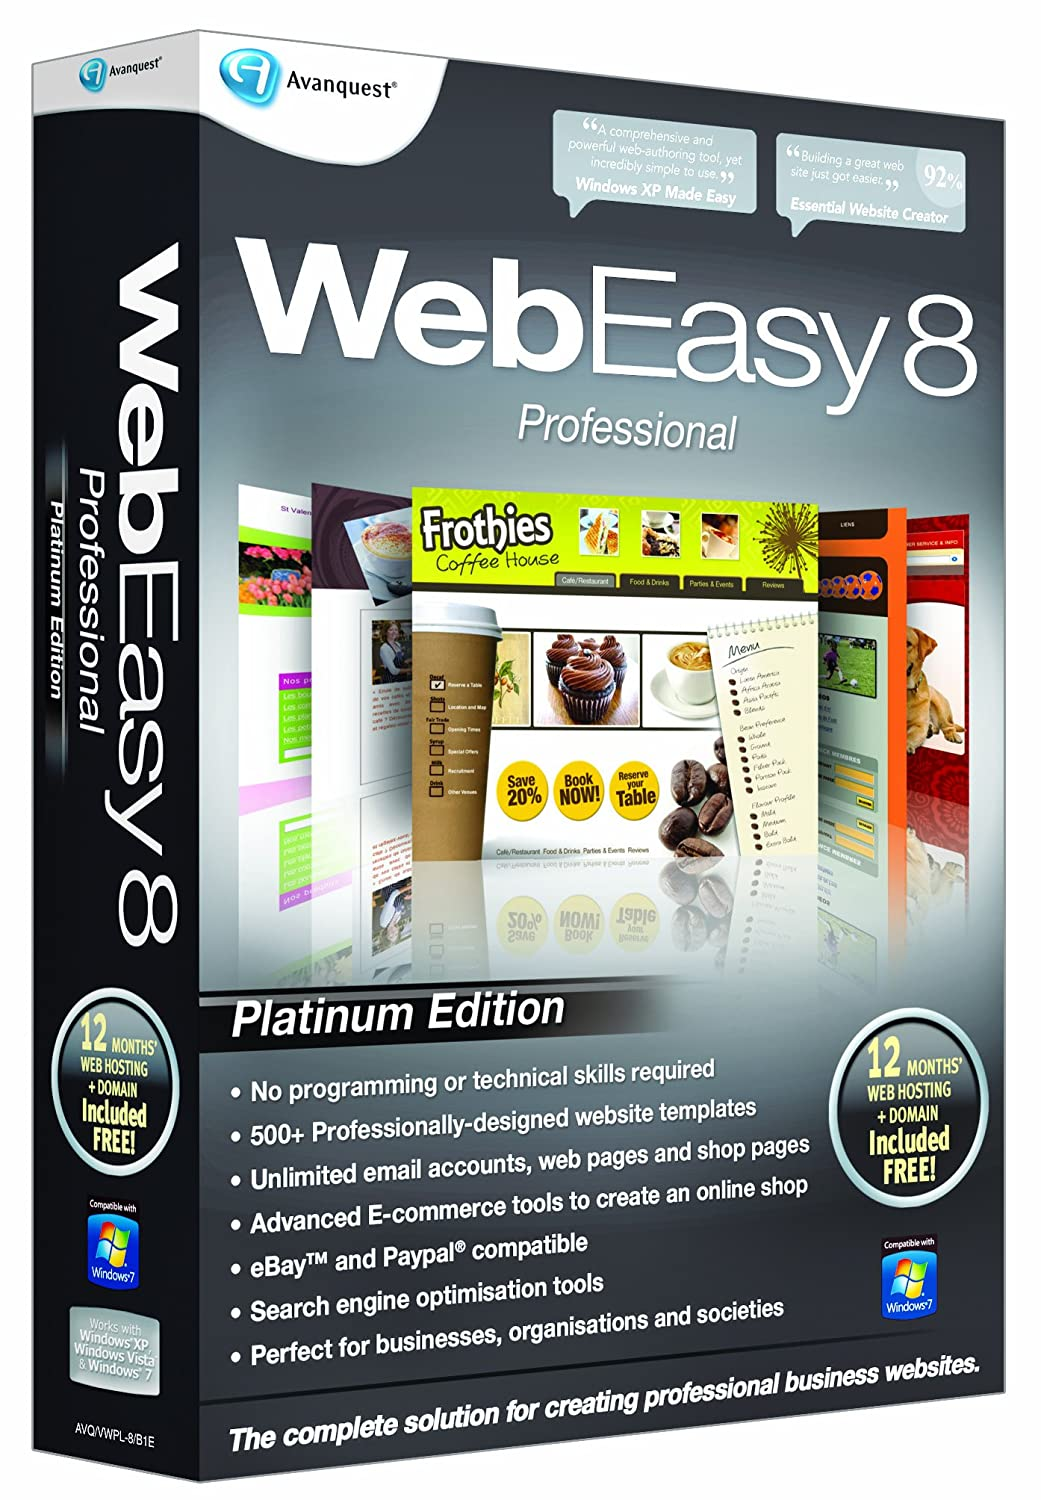 Avanquest webeasy 8.0 key gen